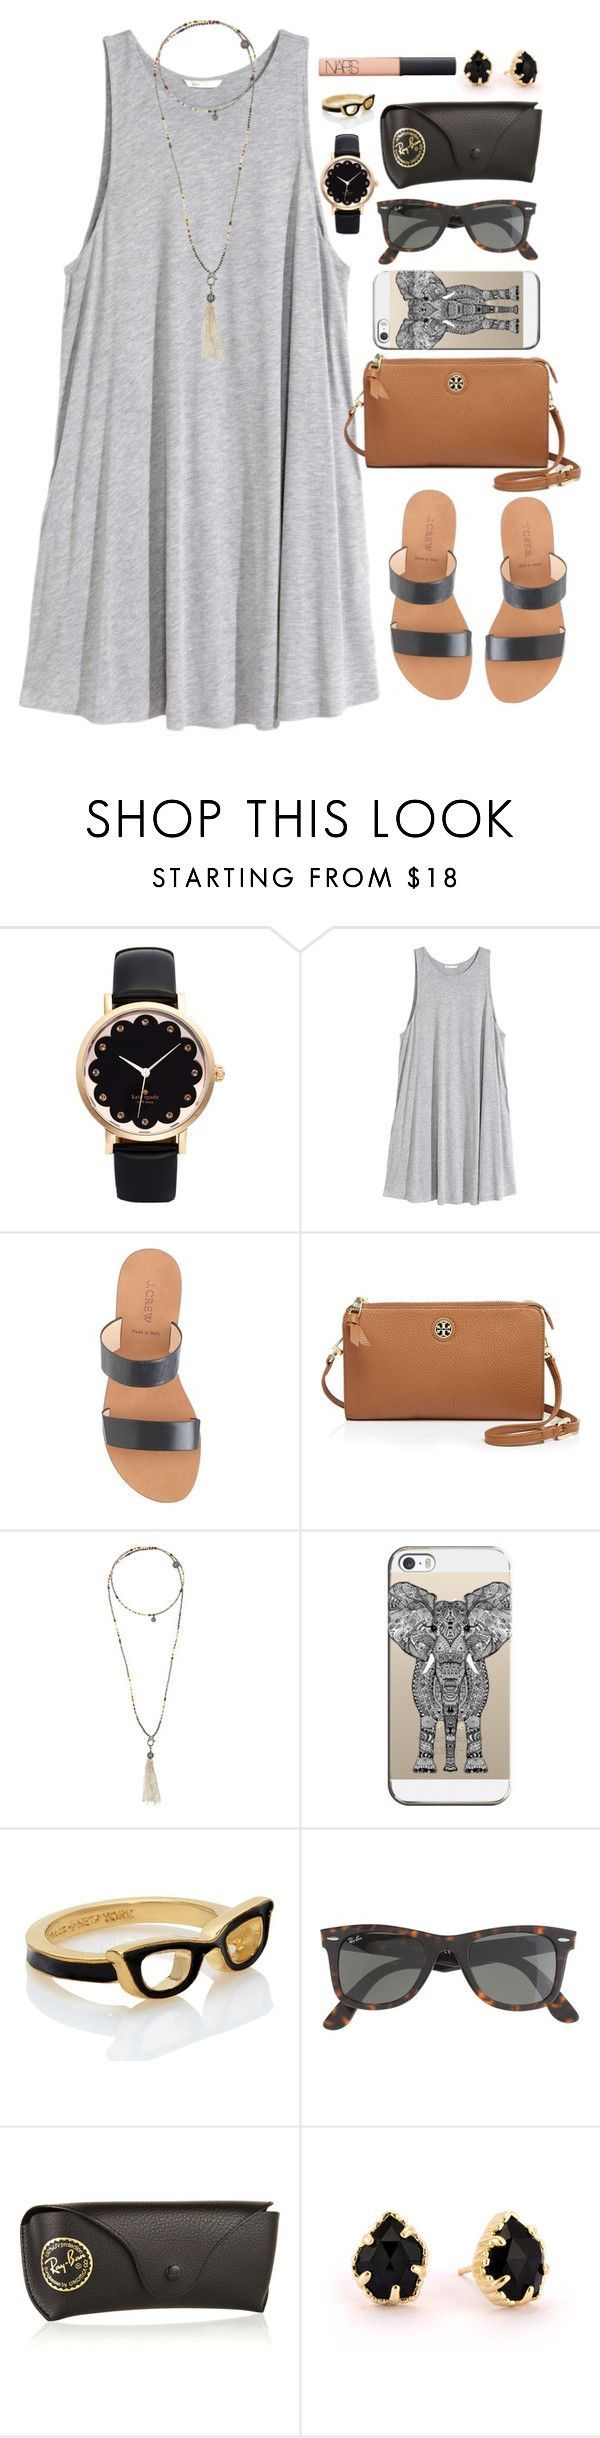 """Untitled #879"" by julesnewkirk ❤ liked on Polyvore featuring Kate Spade, H&M, J.Crew, Tory Burch, Bettina Duncan, Casetify, Ray-Ban, Kendra Scott, NARS Cosmetics and julesbestsets"